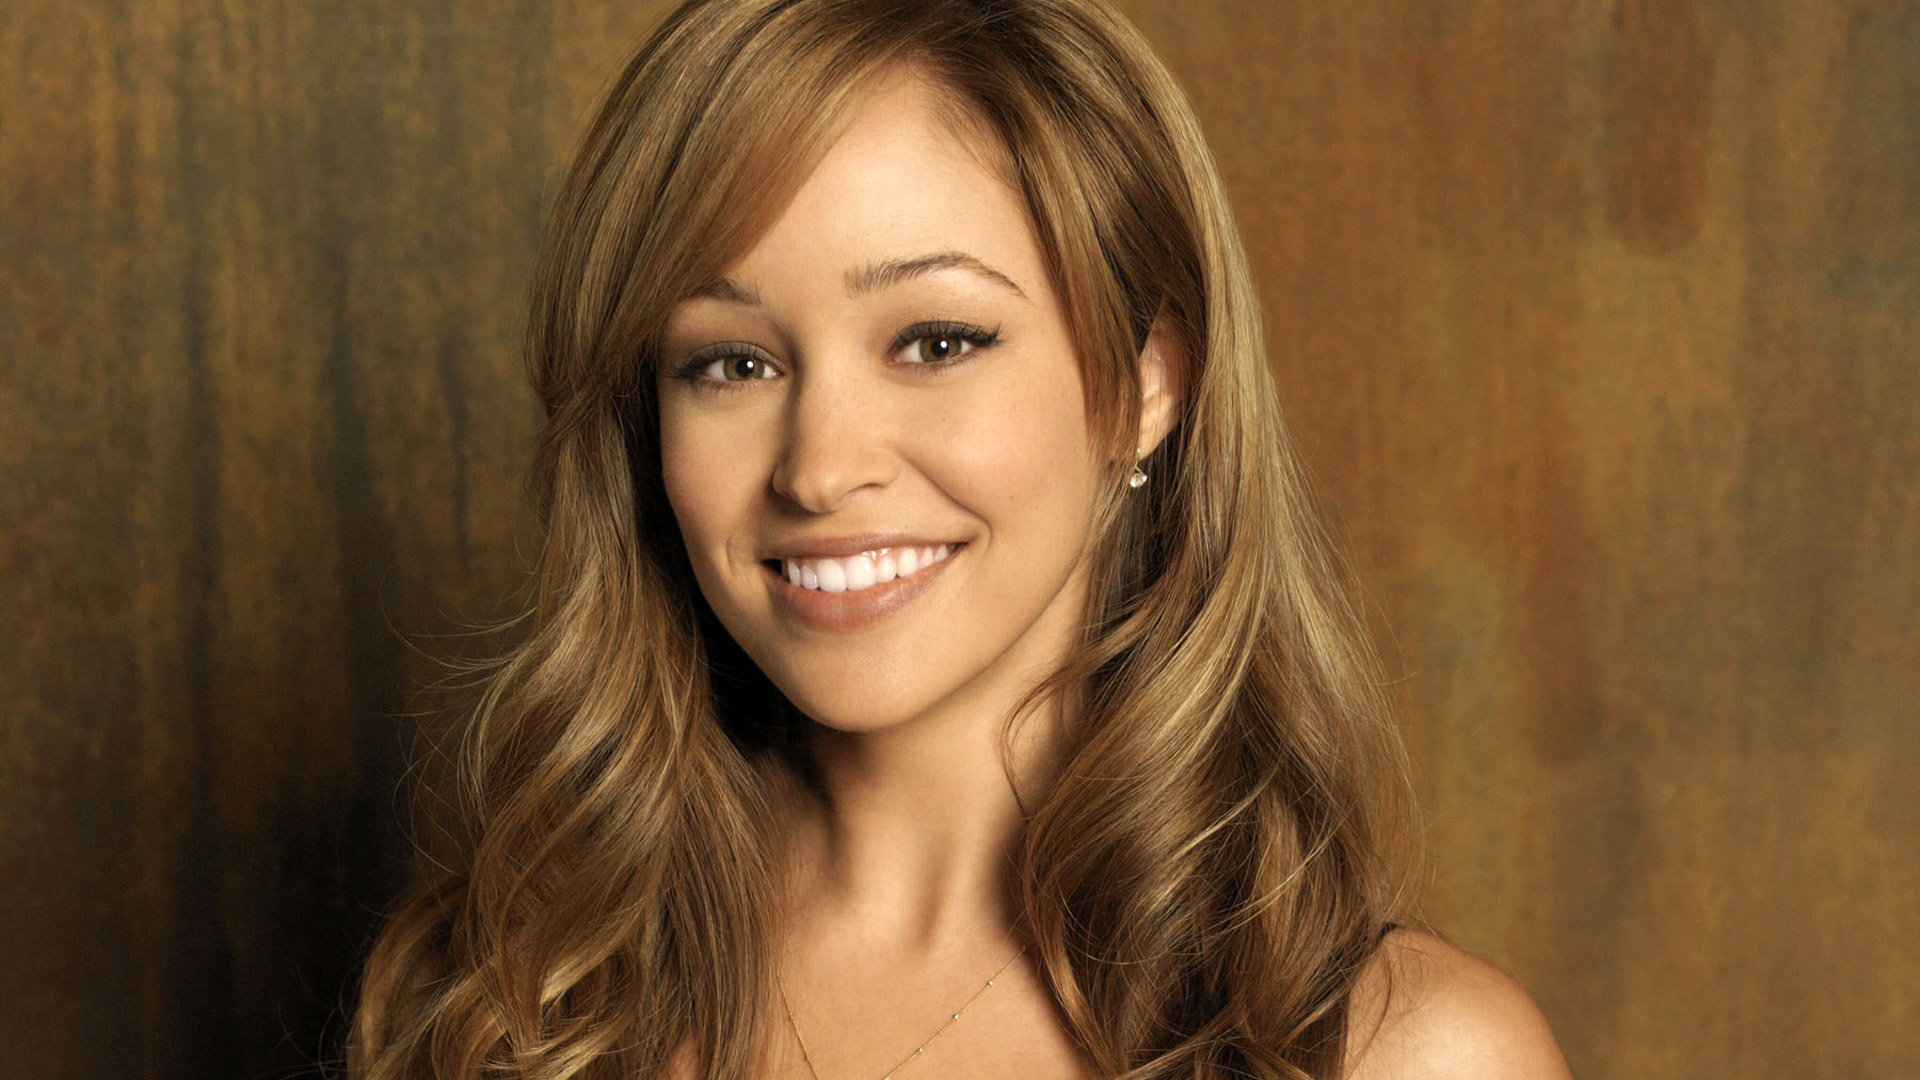 Beautiful Autumn Reeser